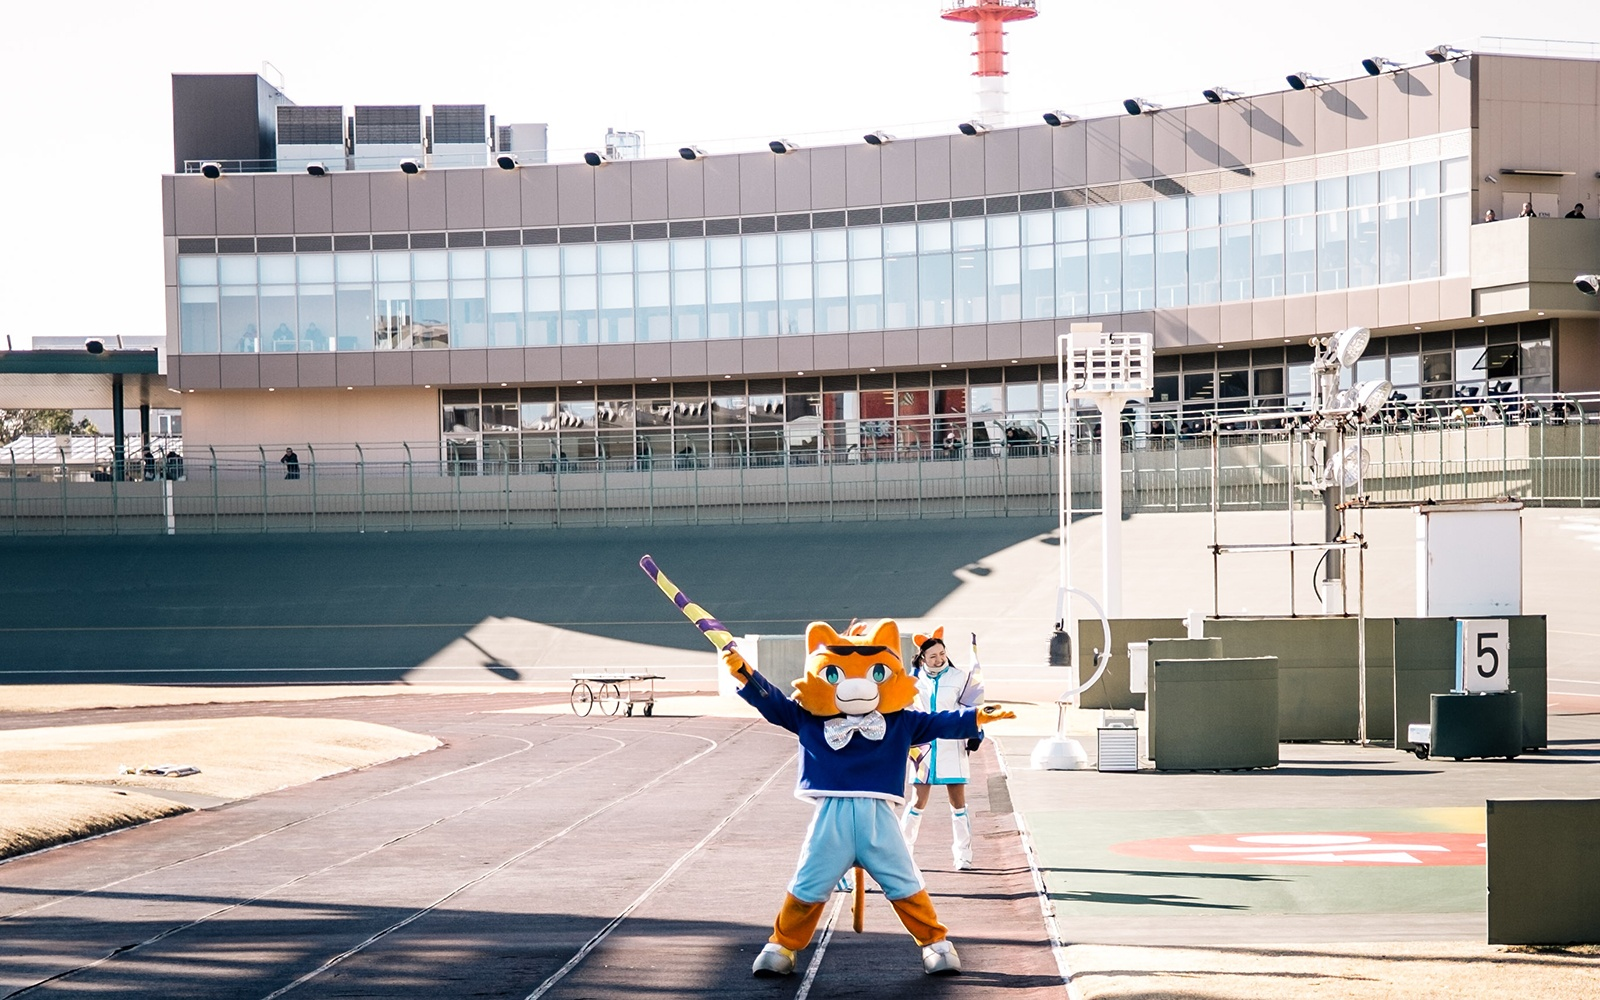 Mascots announce the arrival of the racers witha dance routine